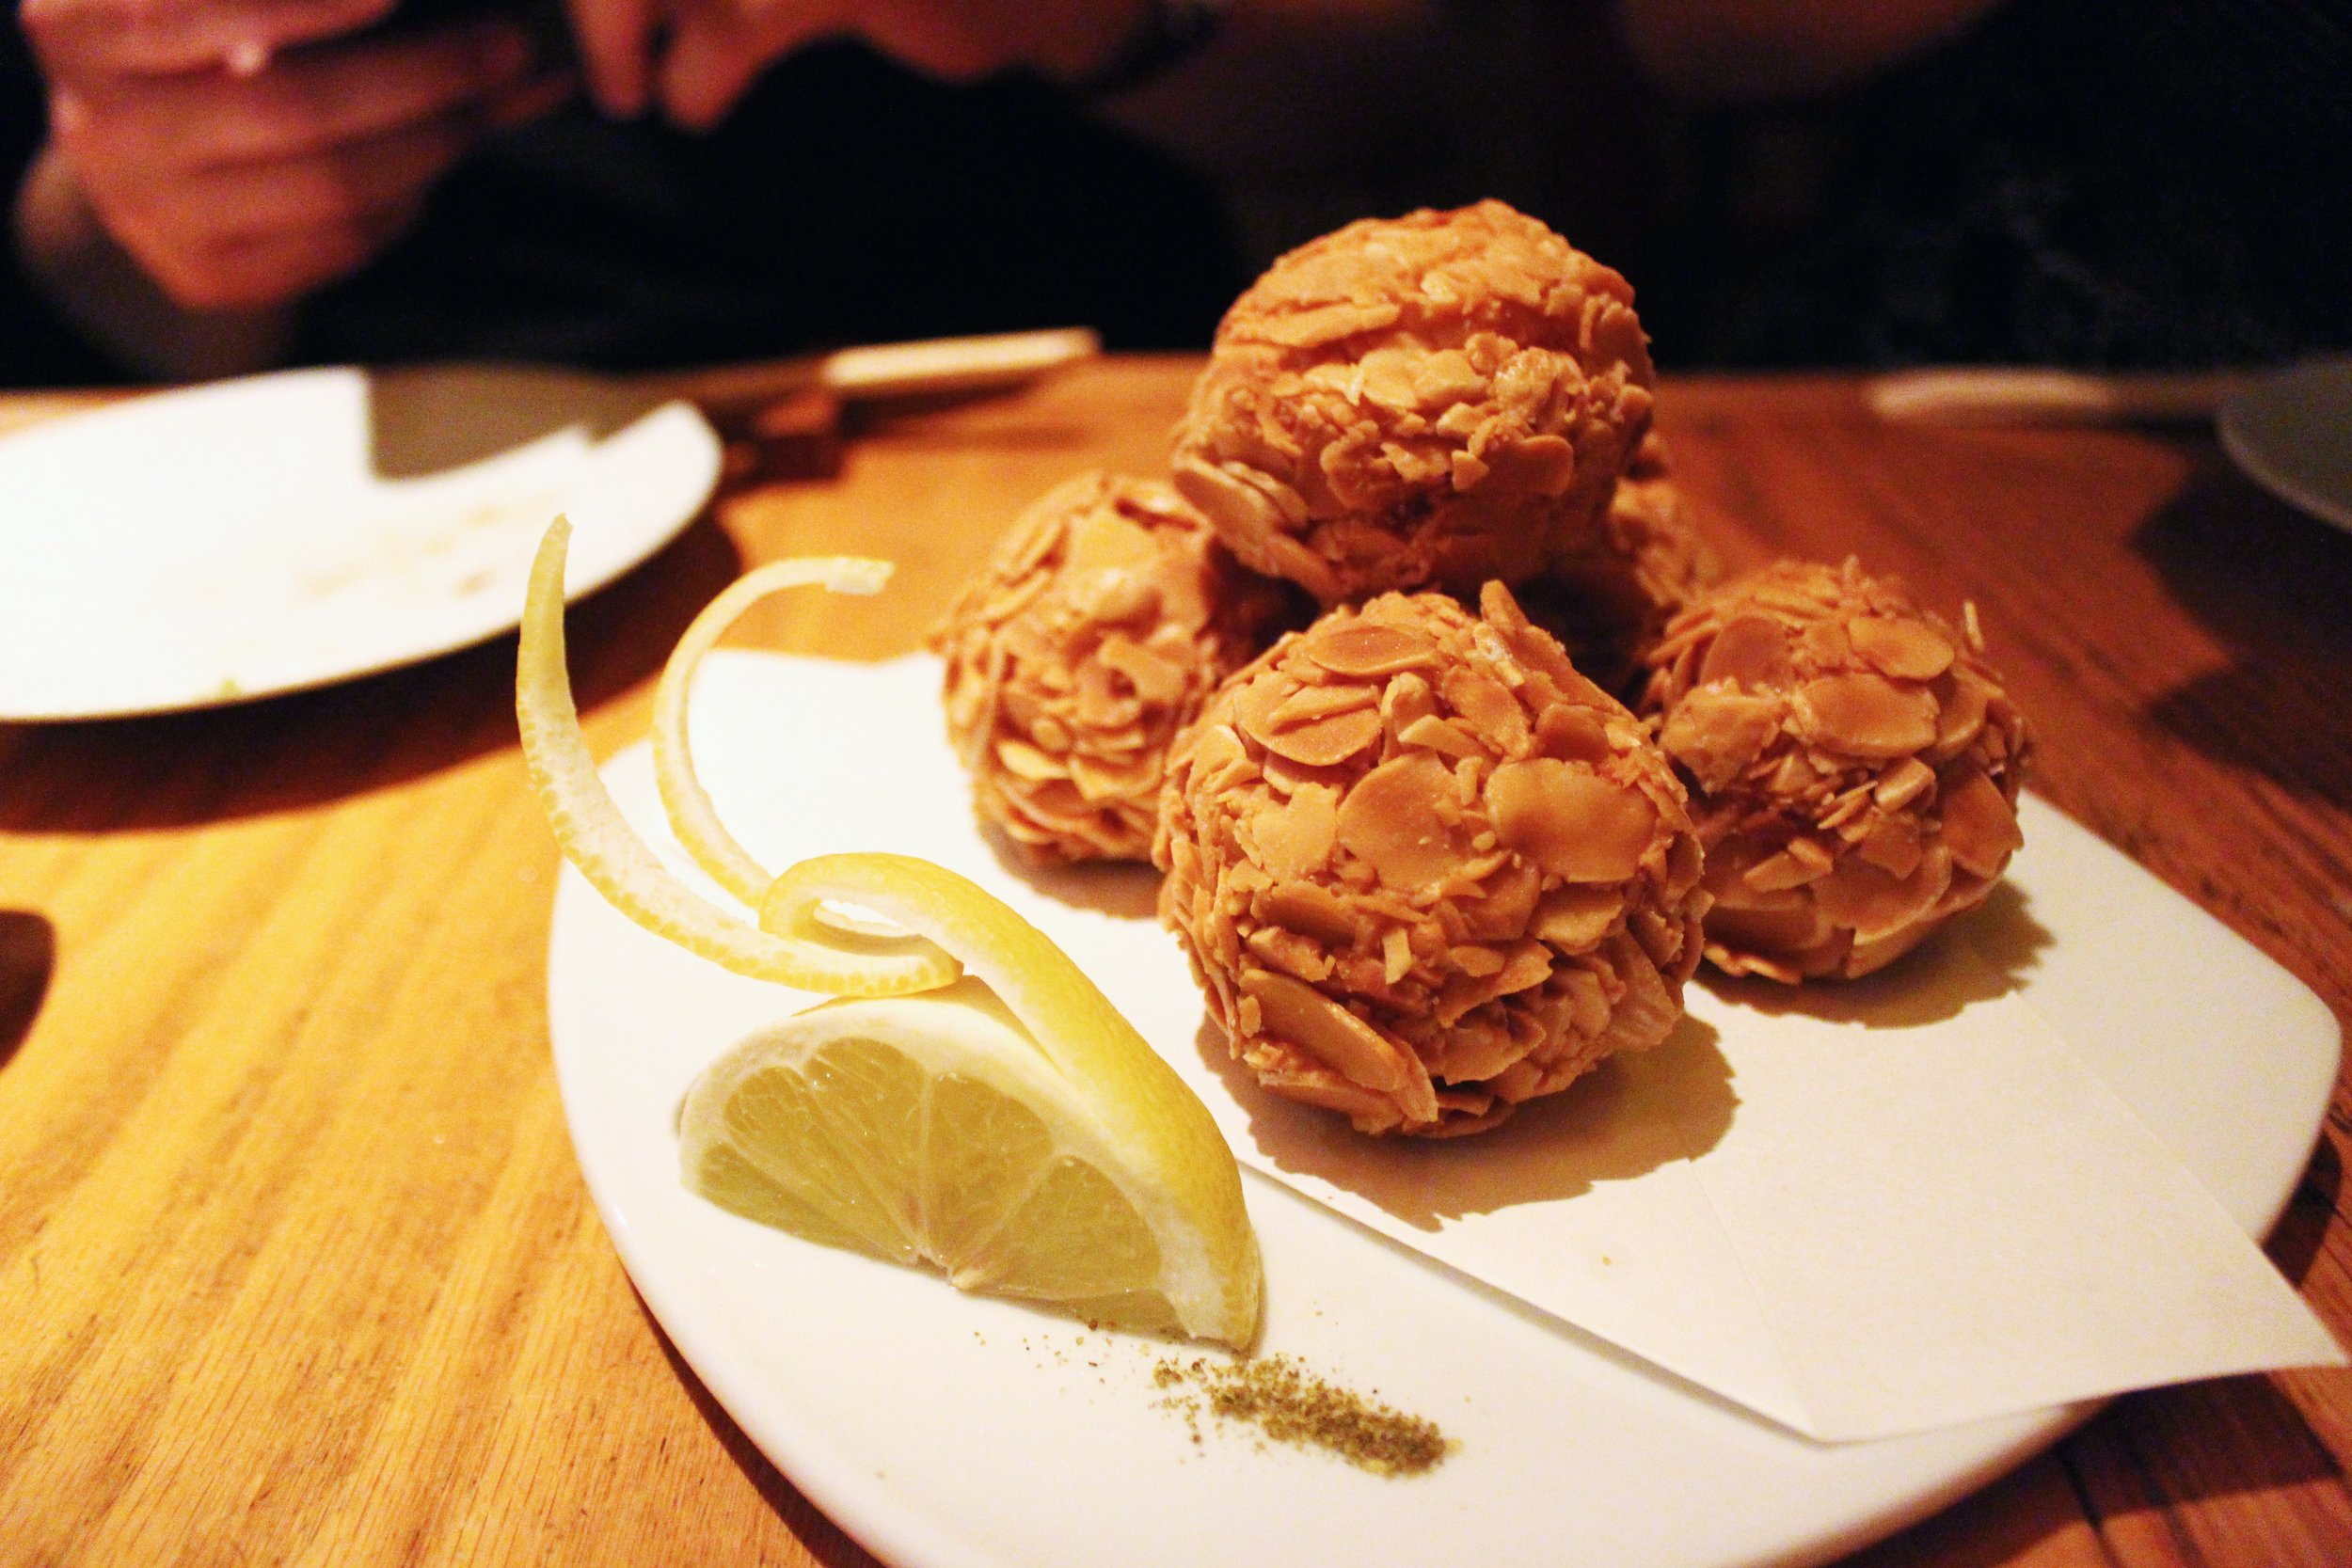 Ebi Shinjo: Deep Fried Shrimp Balls Covered with Sliced Almonds